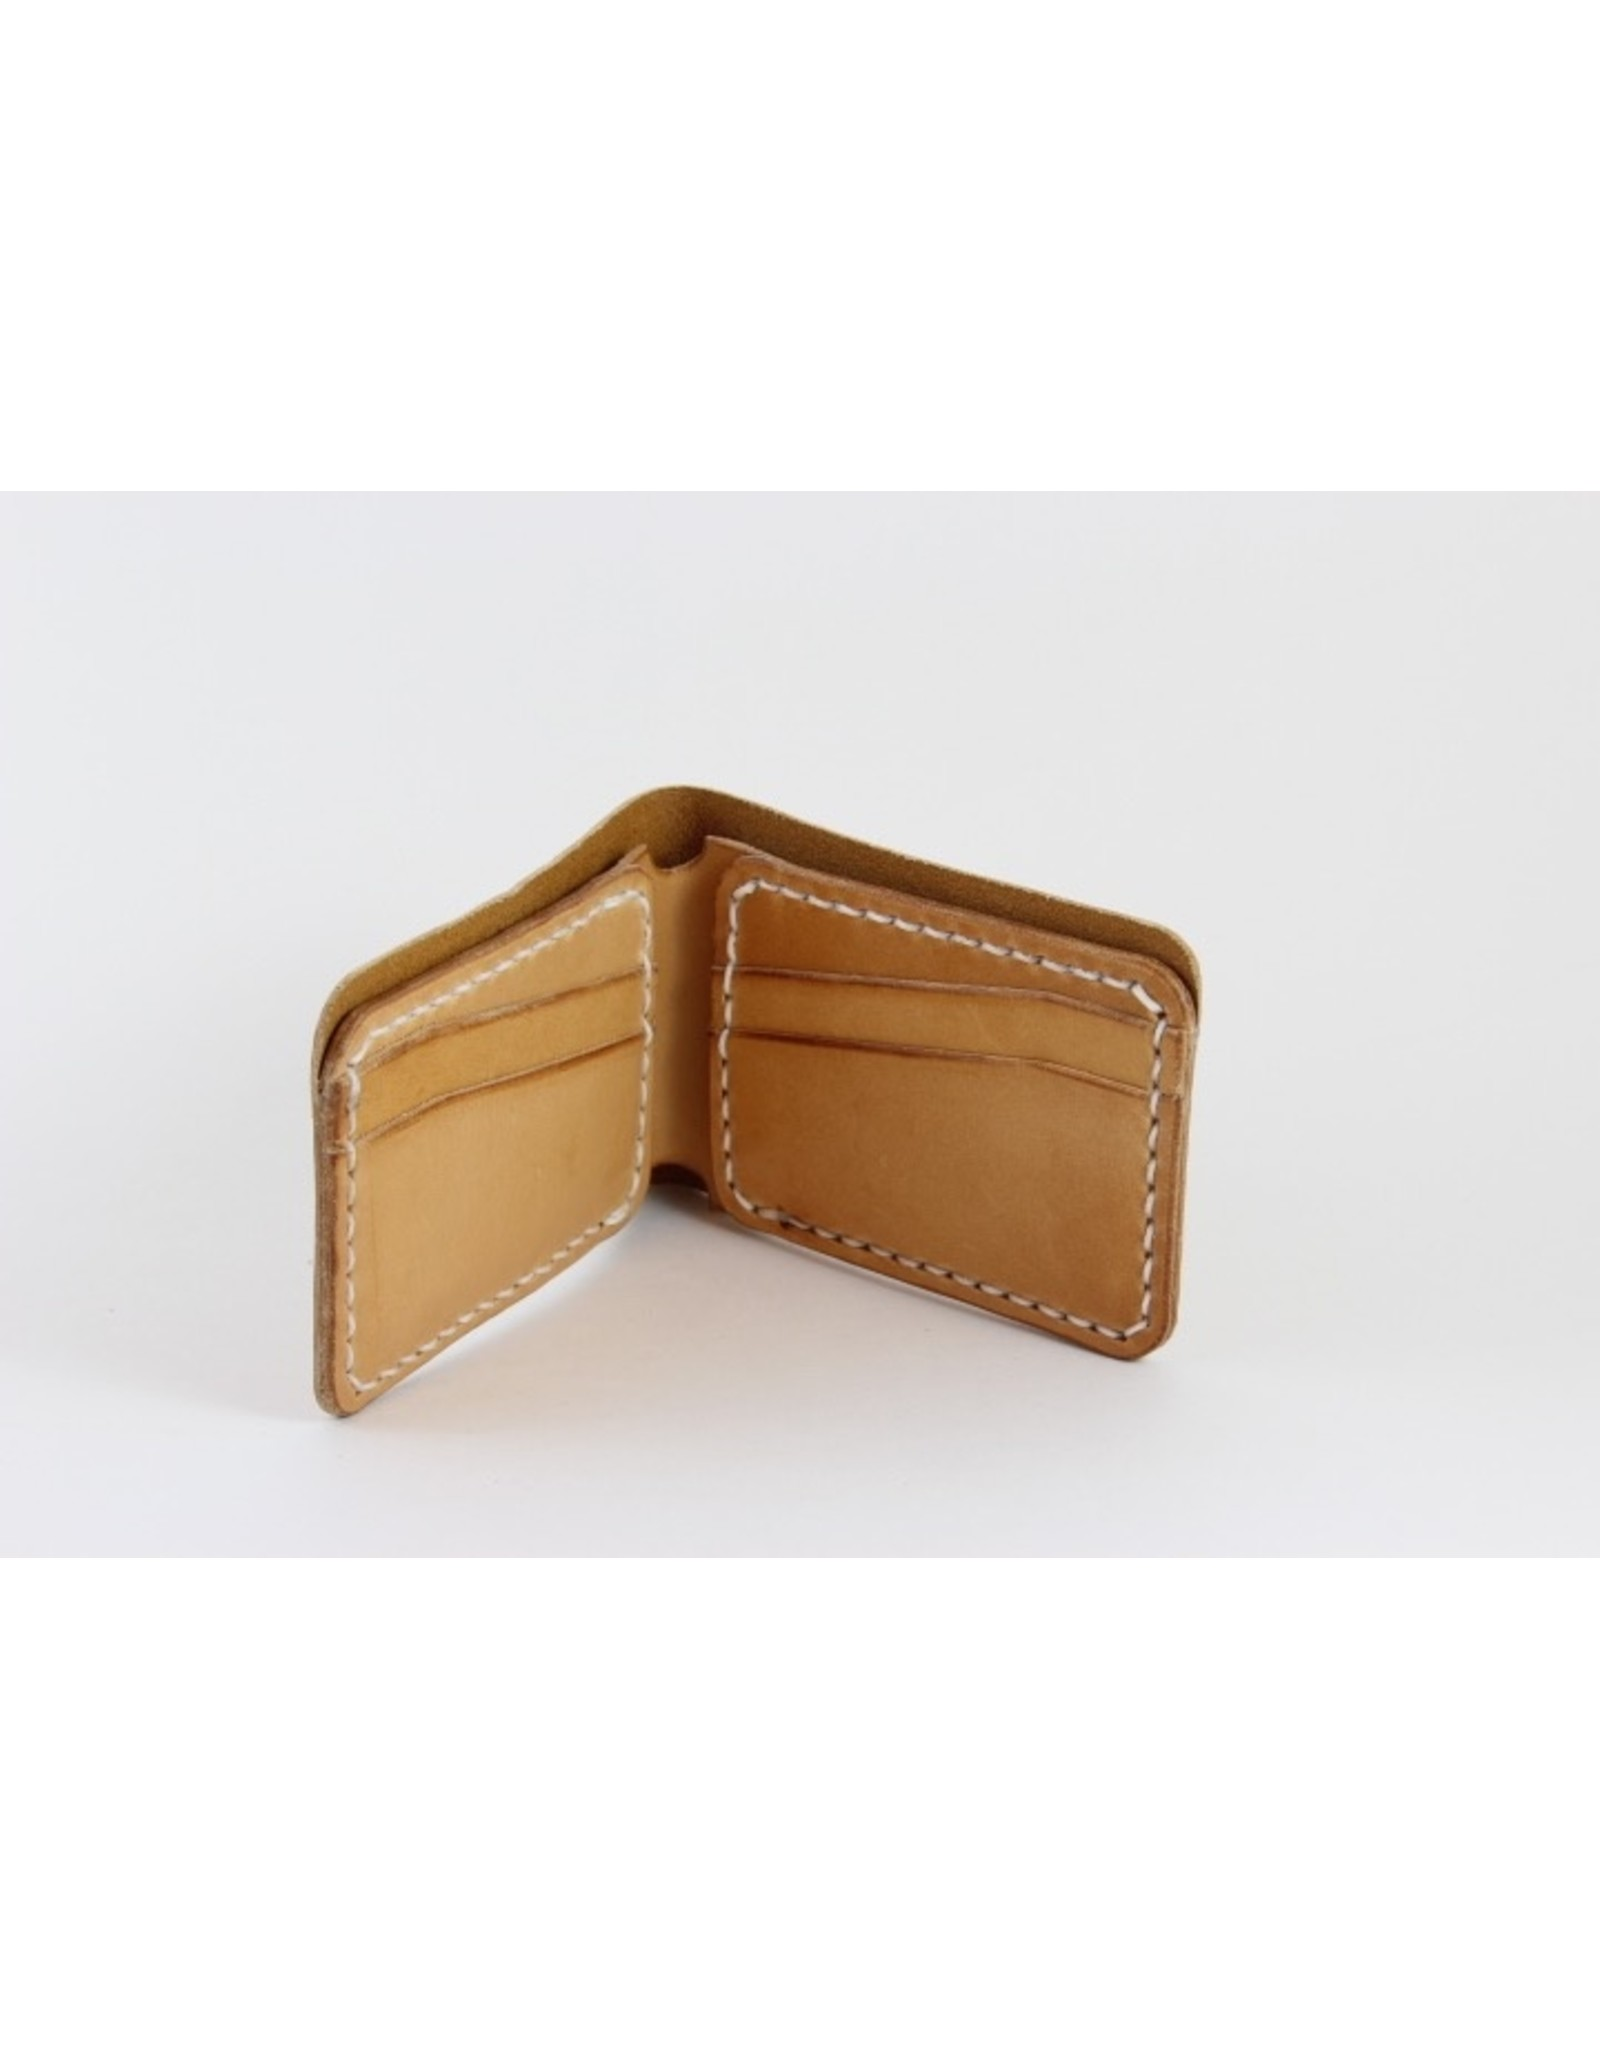 Kyle McPhee Bi-Fold Wallet by Phee's Original Goods